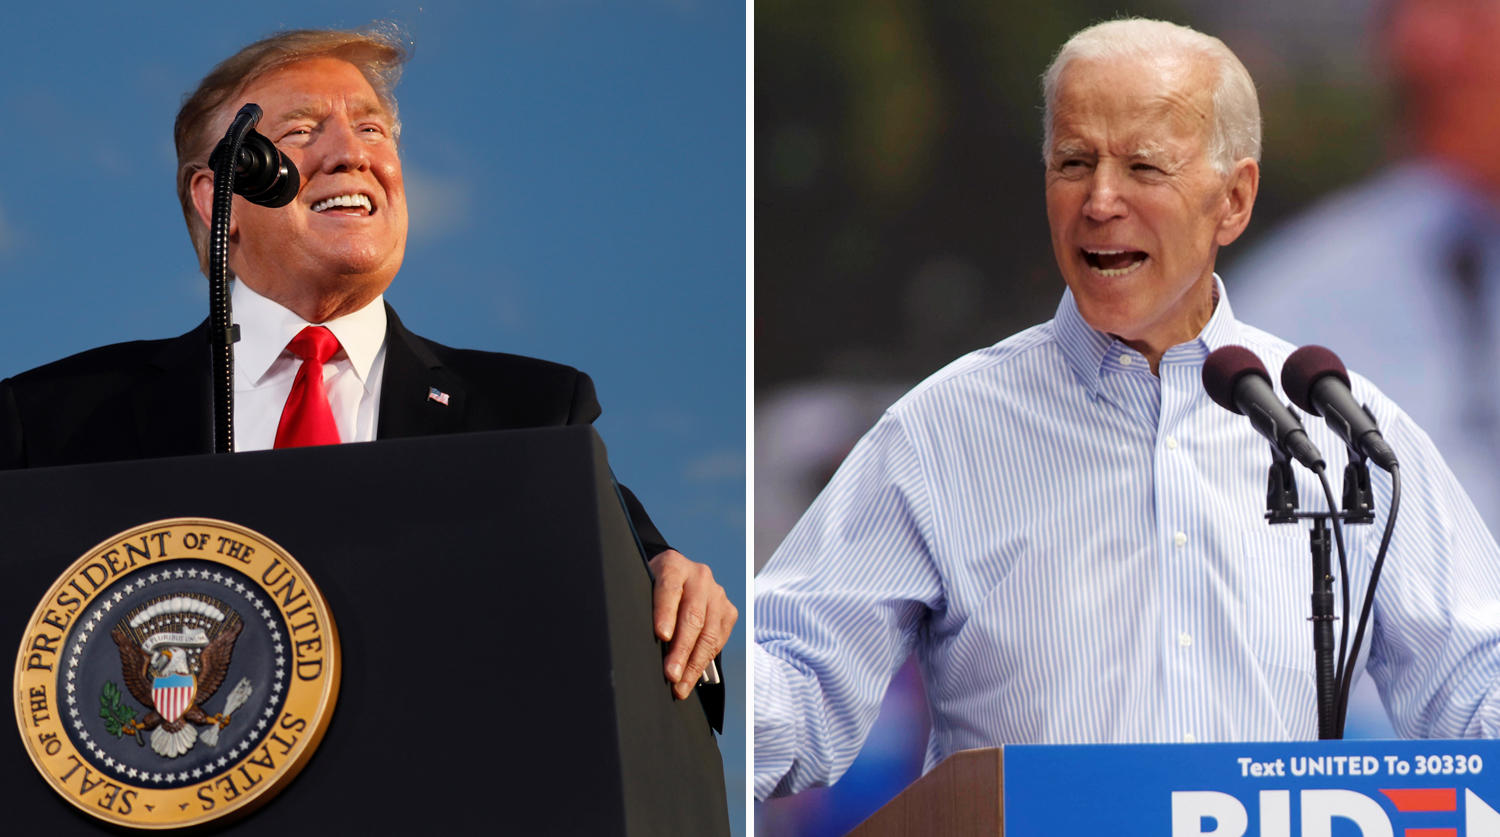 Donald Trump claims Joe Biden is 'against God'